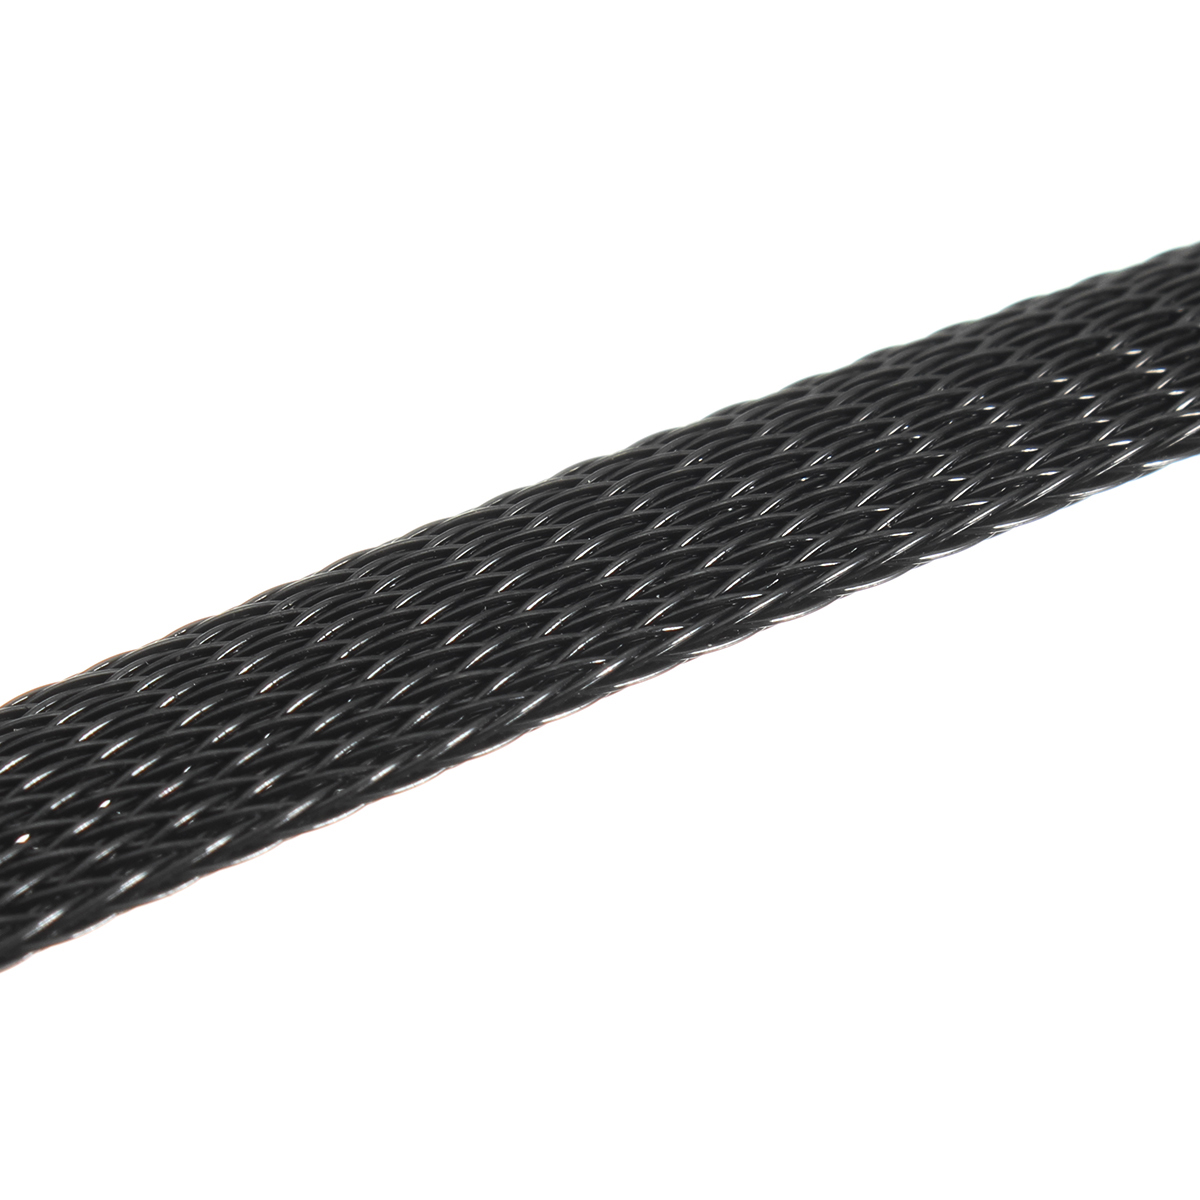 6m 8mm/10mm/12mm/15mm/20mm Wire Cable Sheathing Expandable Sleeving ...